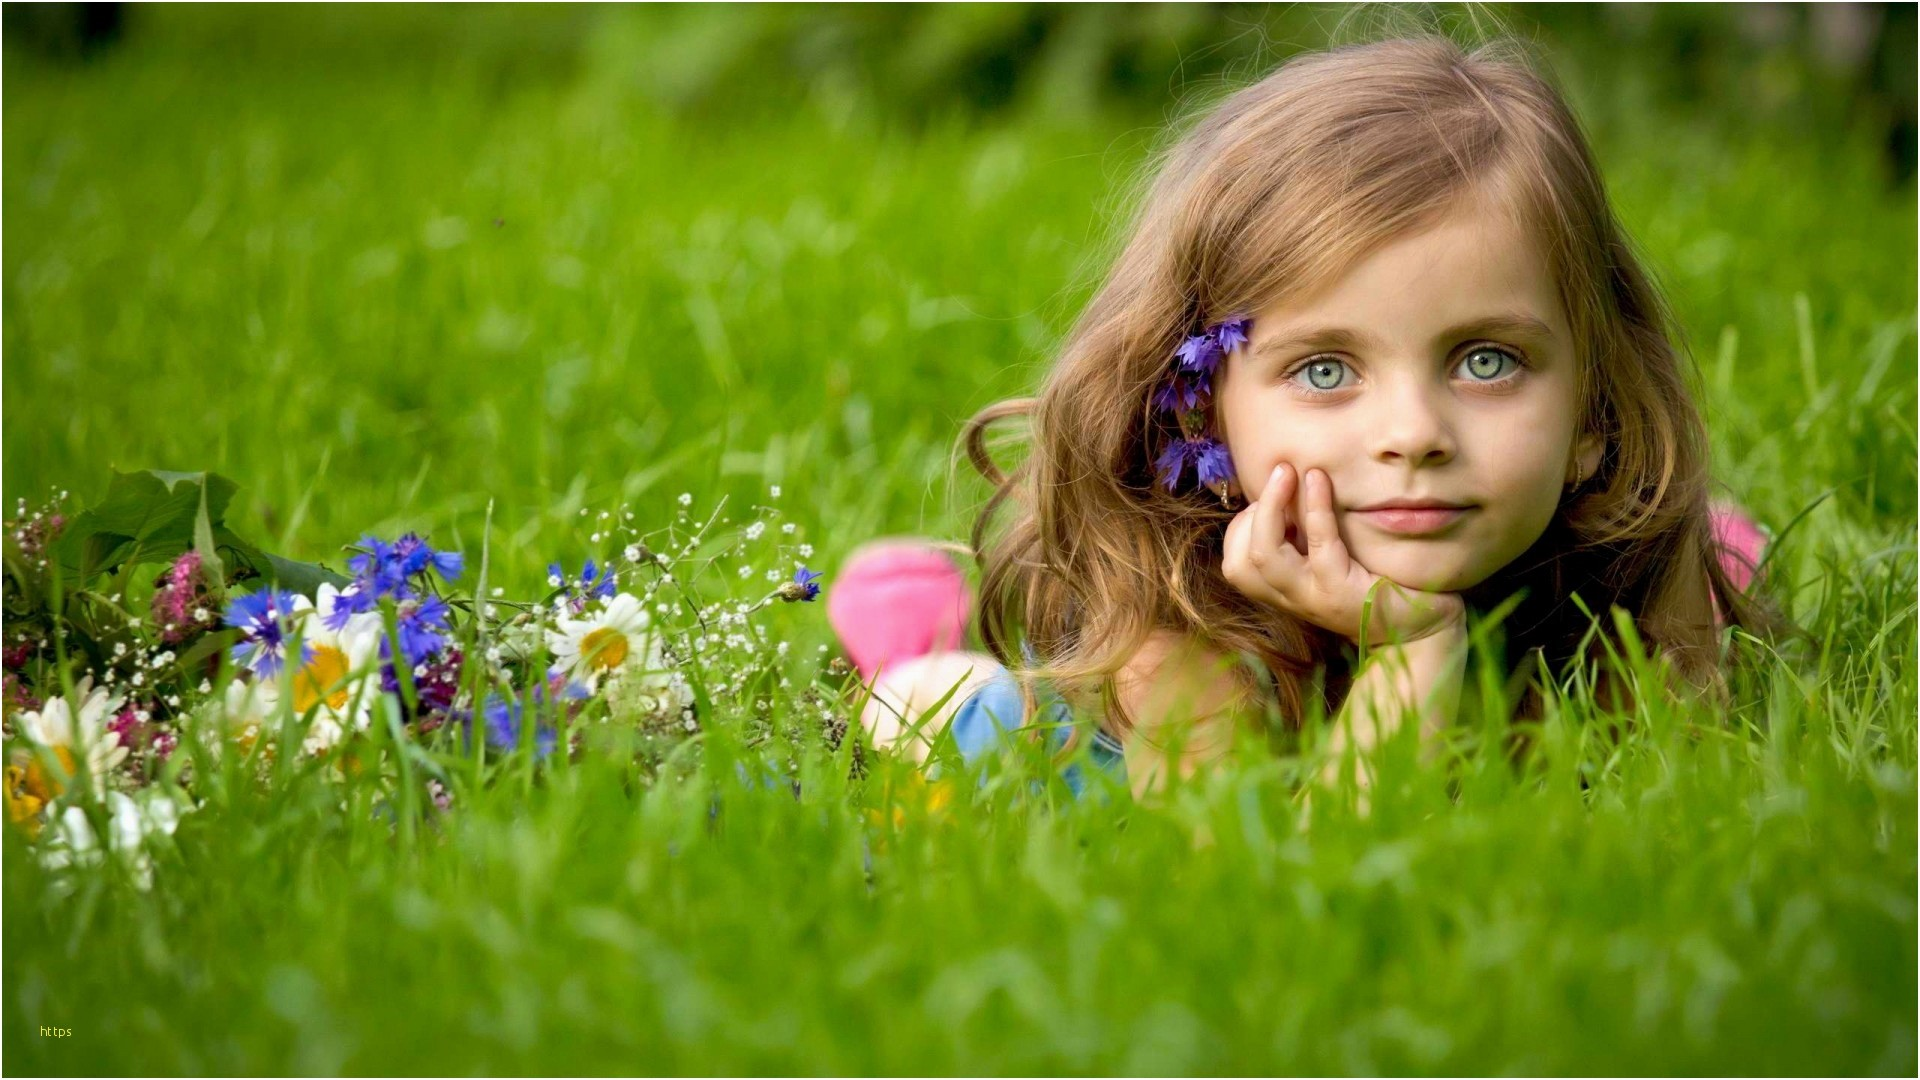 Res: 1920x1080, ... Cute Girl Wallpapers Luxury Cute Little Girl Hd Wallpaper  Stylishhdwallpapers